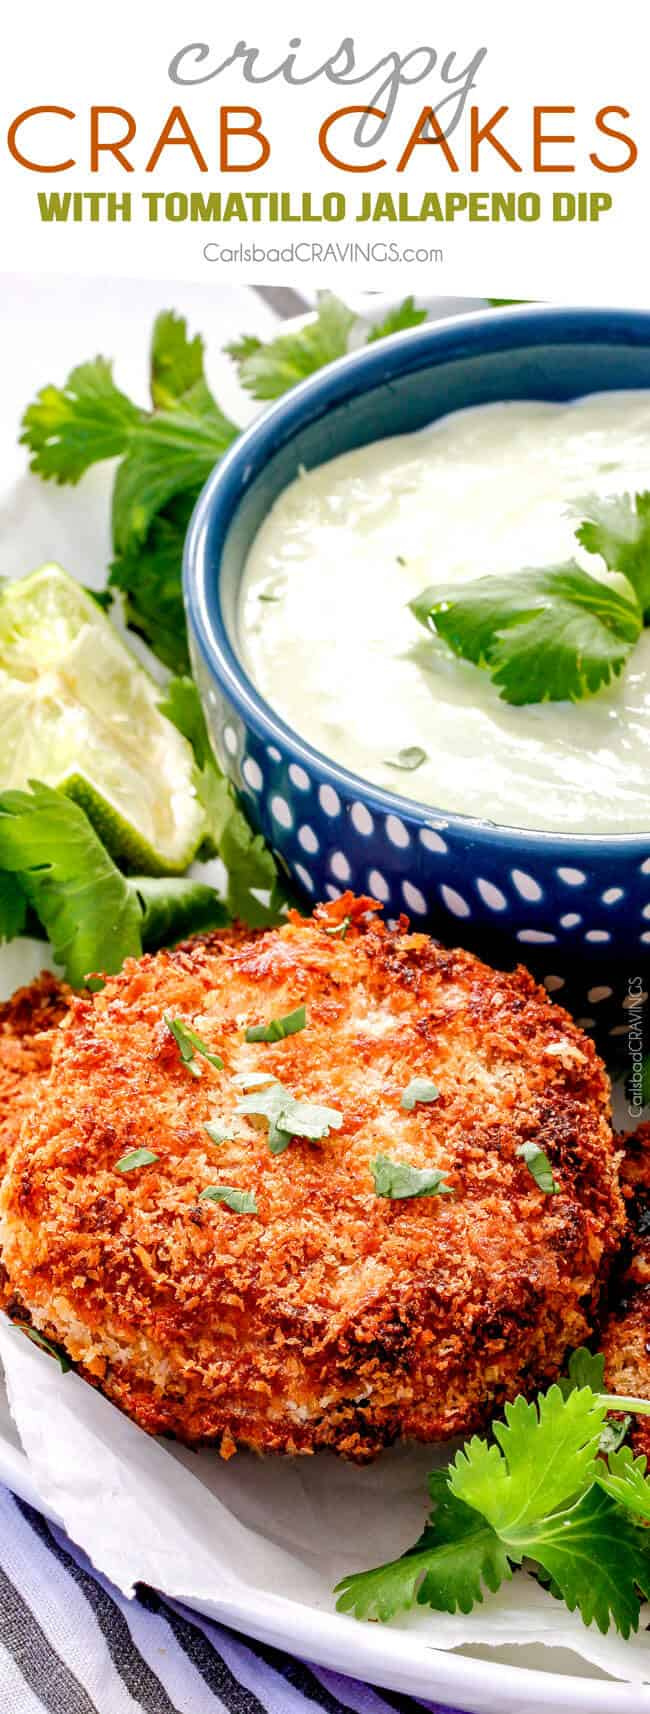 Easy, extra crispy, restaurant quality Crab Cakes right in your own home! Crispy on the outside, moist, juicy, flavor packed on the inside with the BEST DIP ever!! You can also make ahead of time for stress free appetizers!